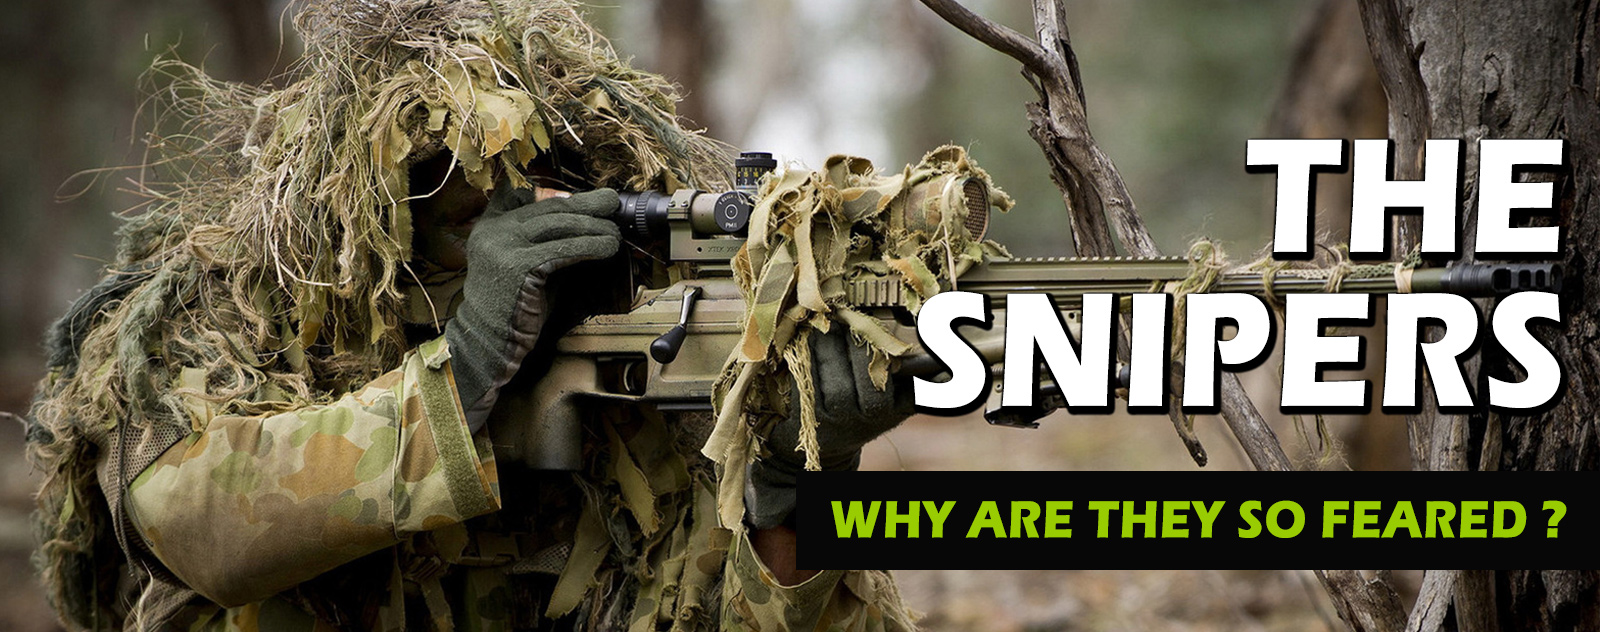 why are snipers so feared